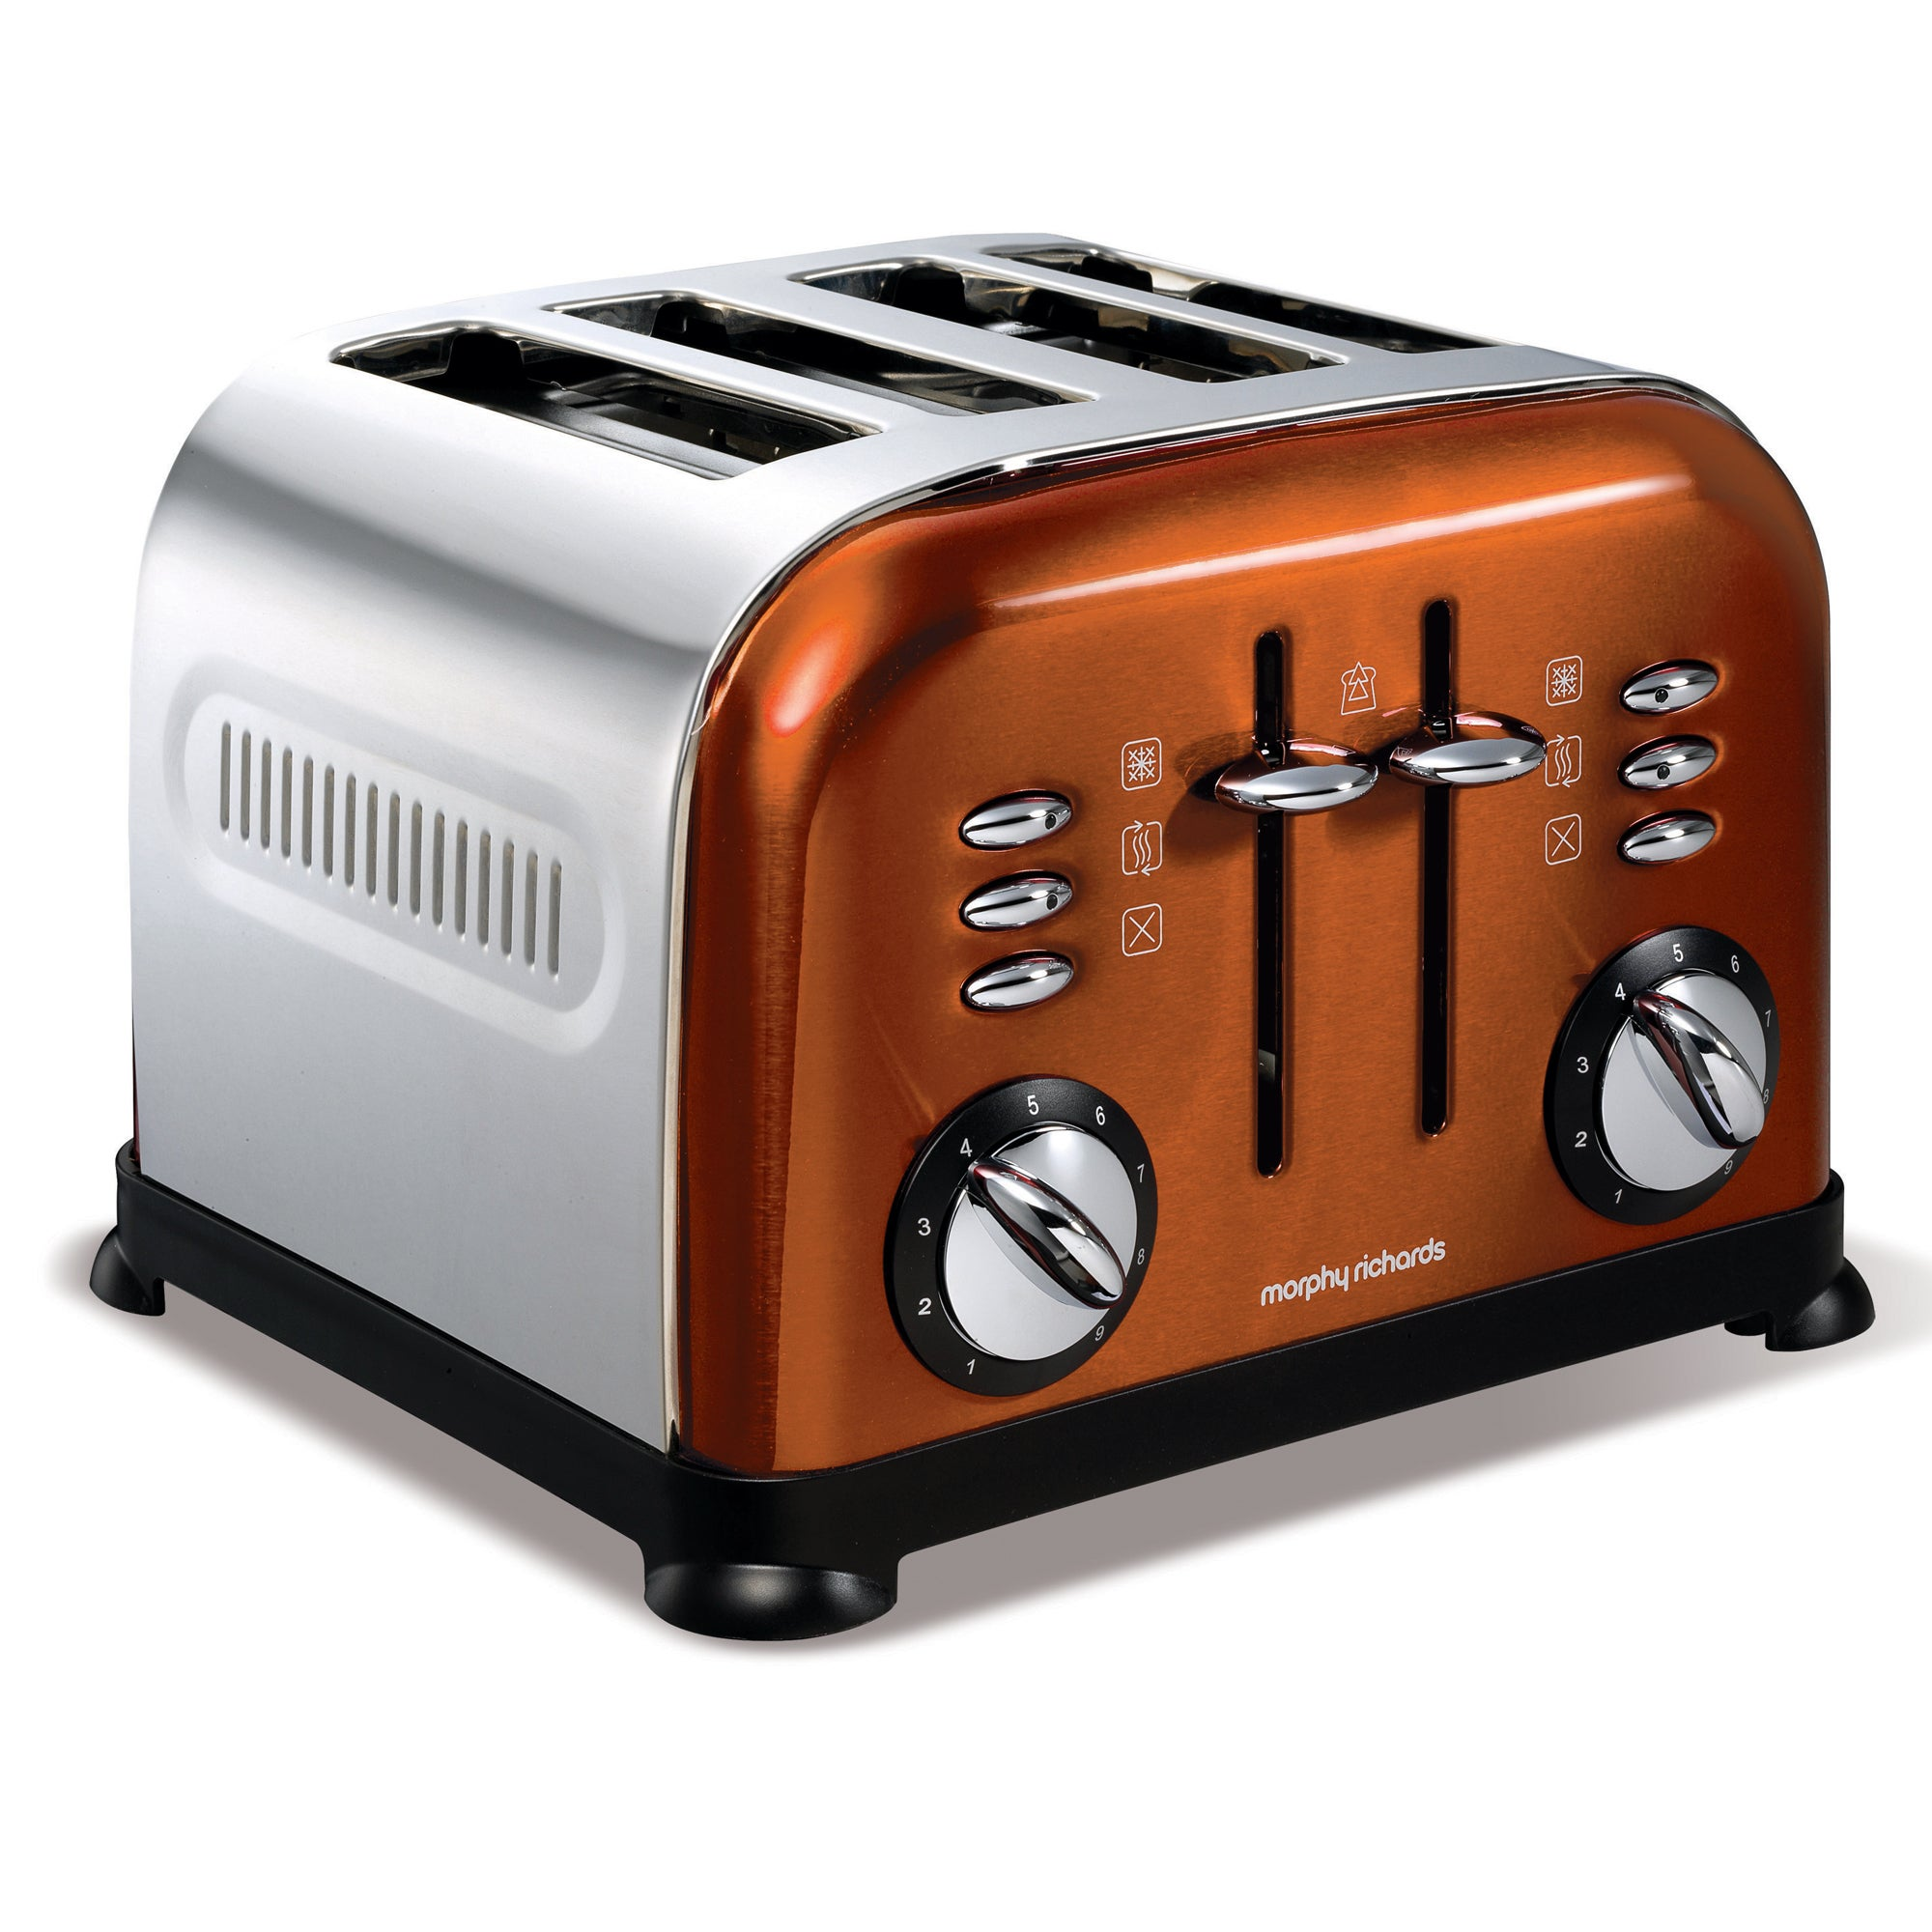 Morphy Richards Accents Copper 4 Slice Toaster